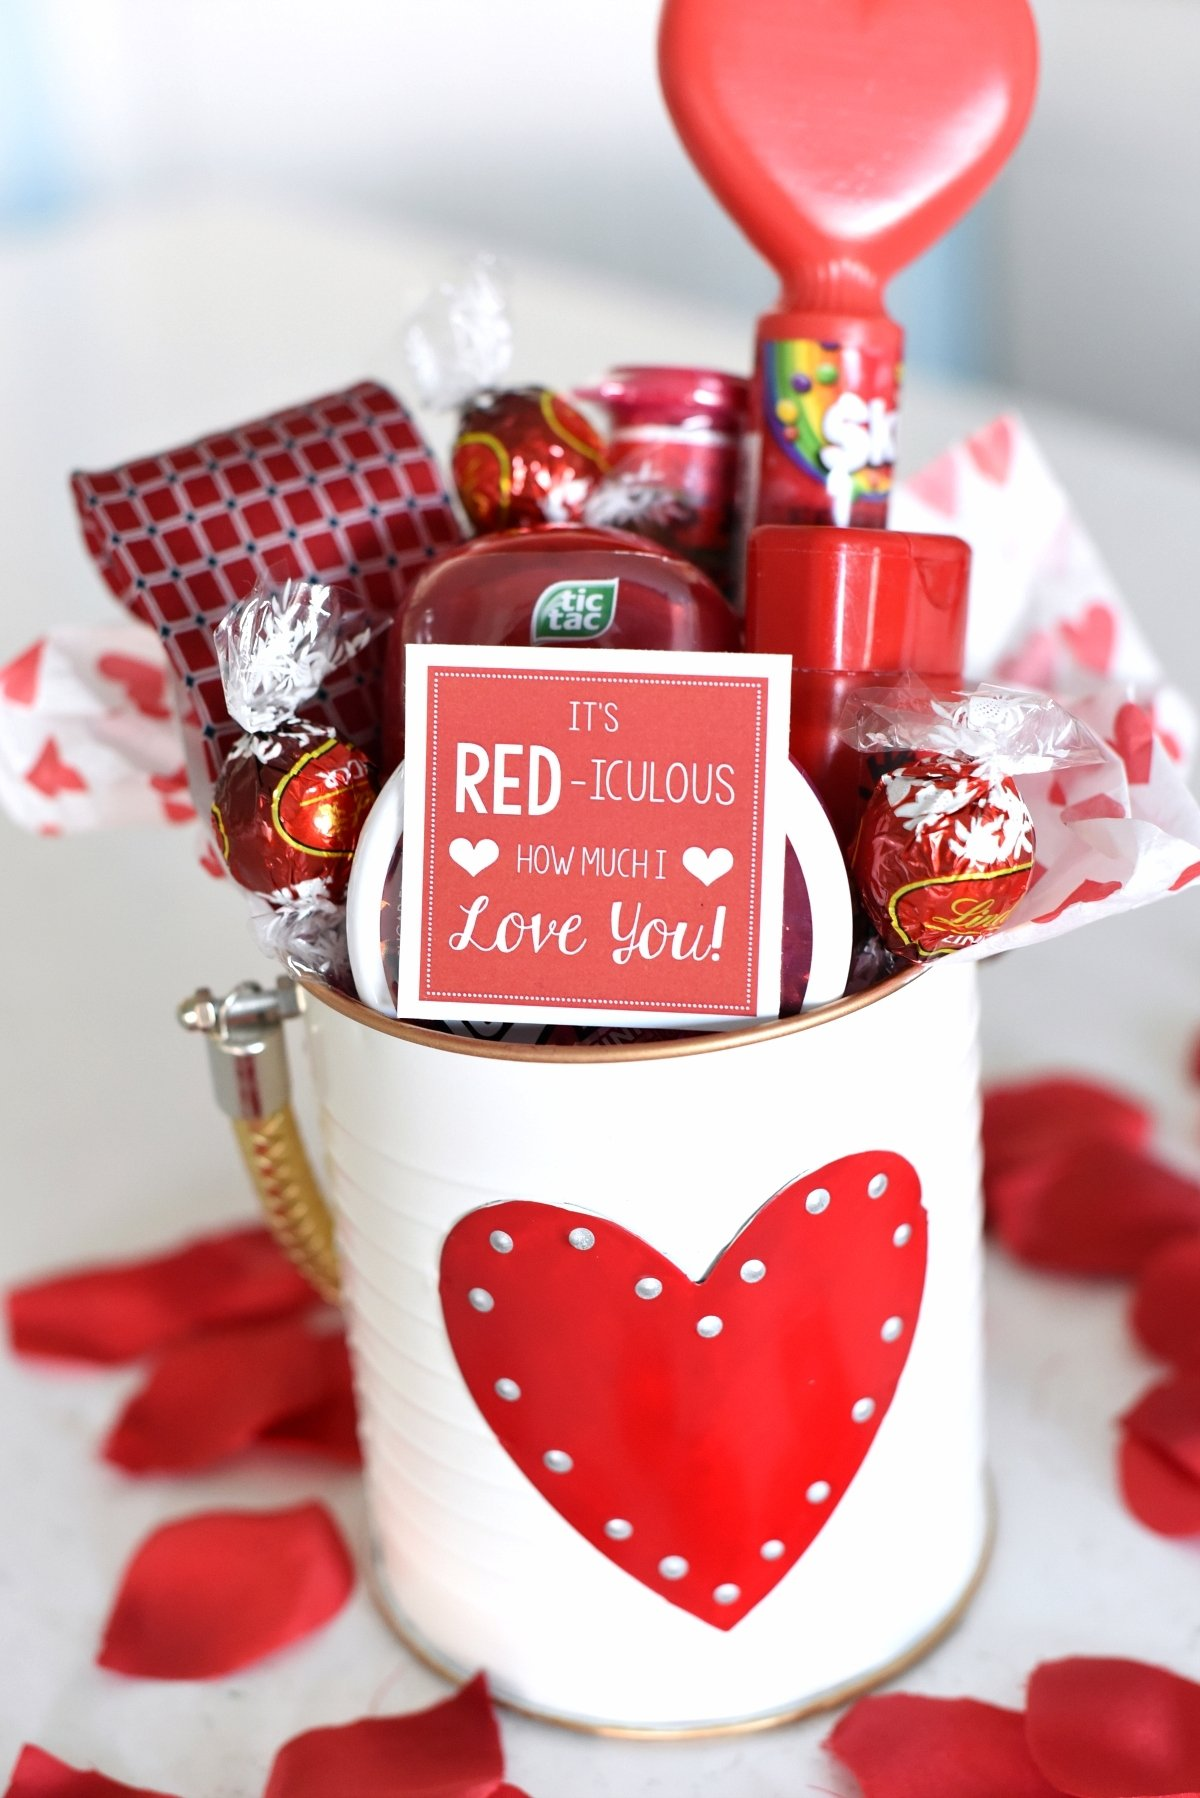 10 Stunning Valentine Day Gift Ideas For Husband cute valentines day gift idea red iculous basket 11 2021